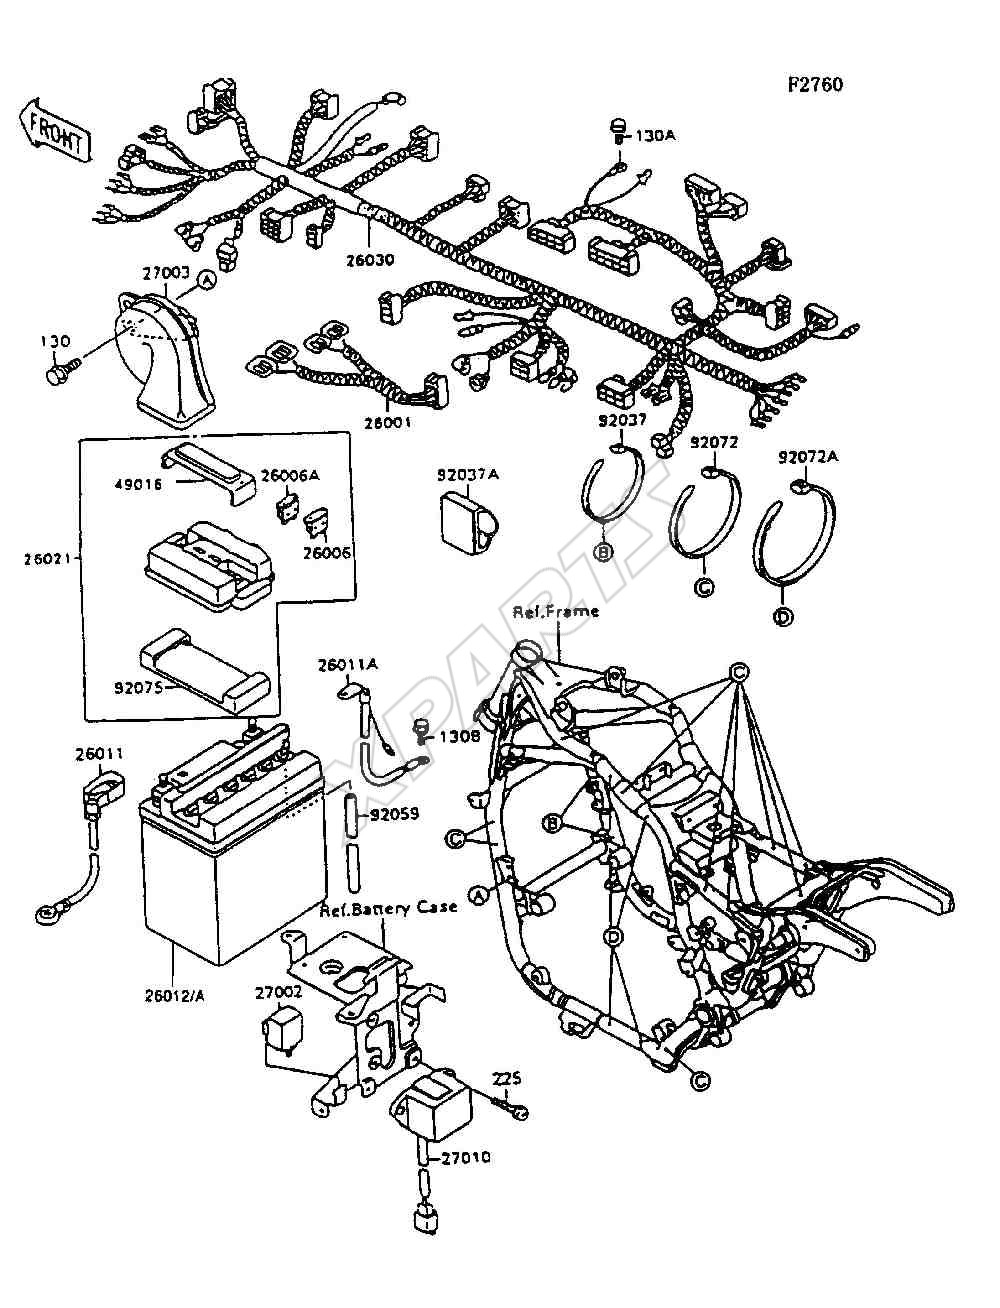 Cdi Wiring Diagram Kawasaki Lakota Diagrams. Diagram. Auto